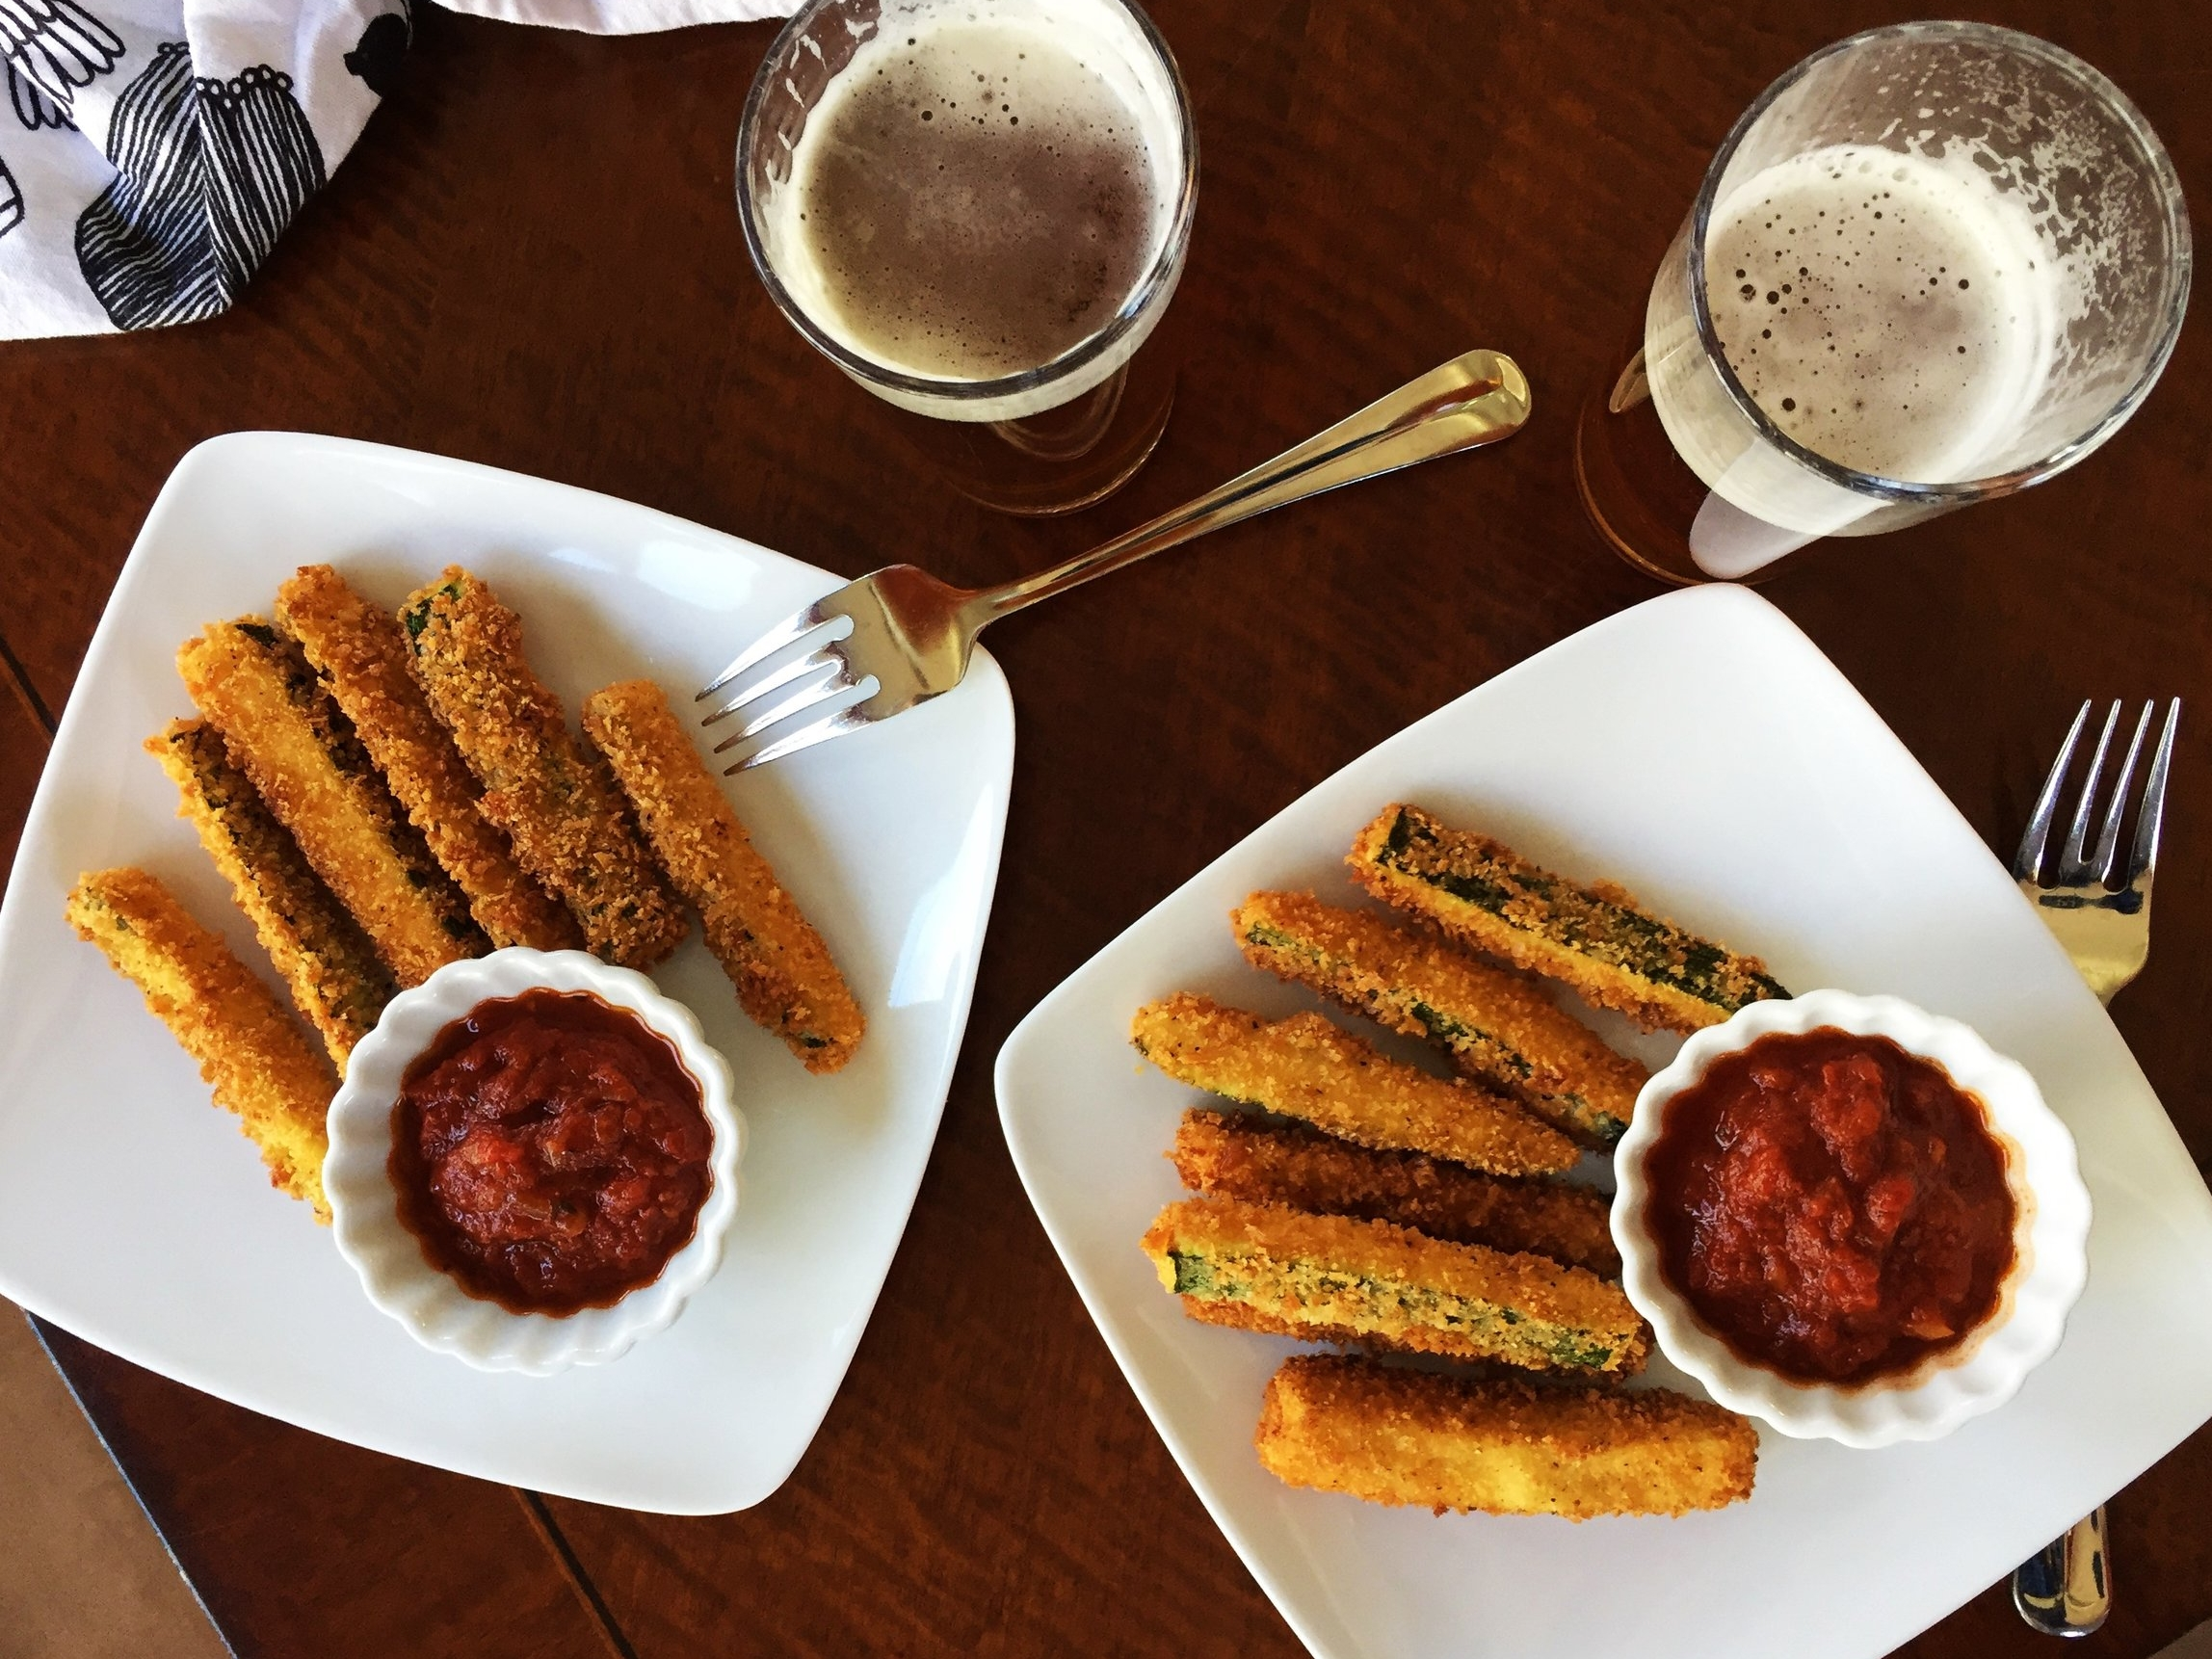 Fried zucchini with marinara dipping sauce, served in the Adventure Kitchen with a couple of beers.